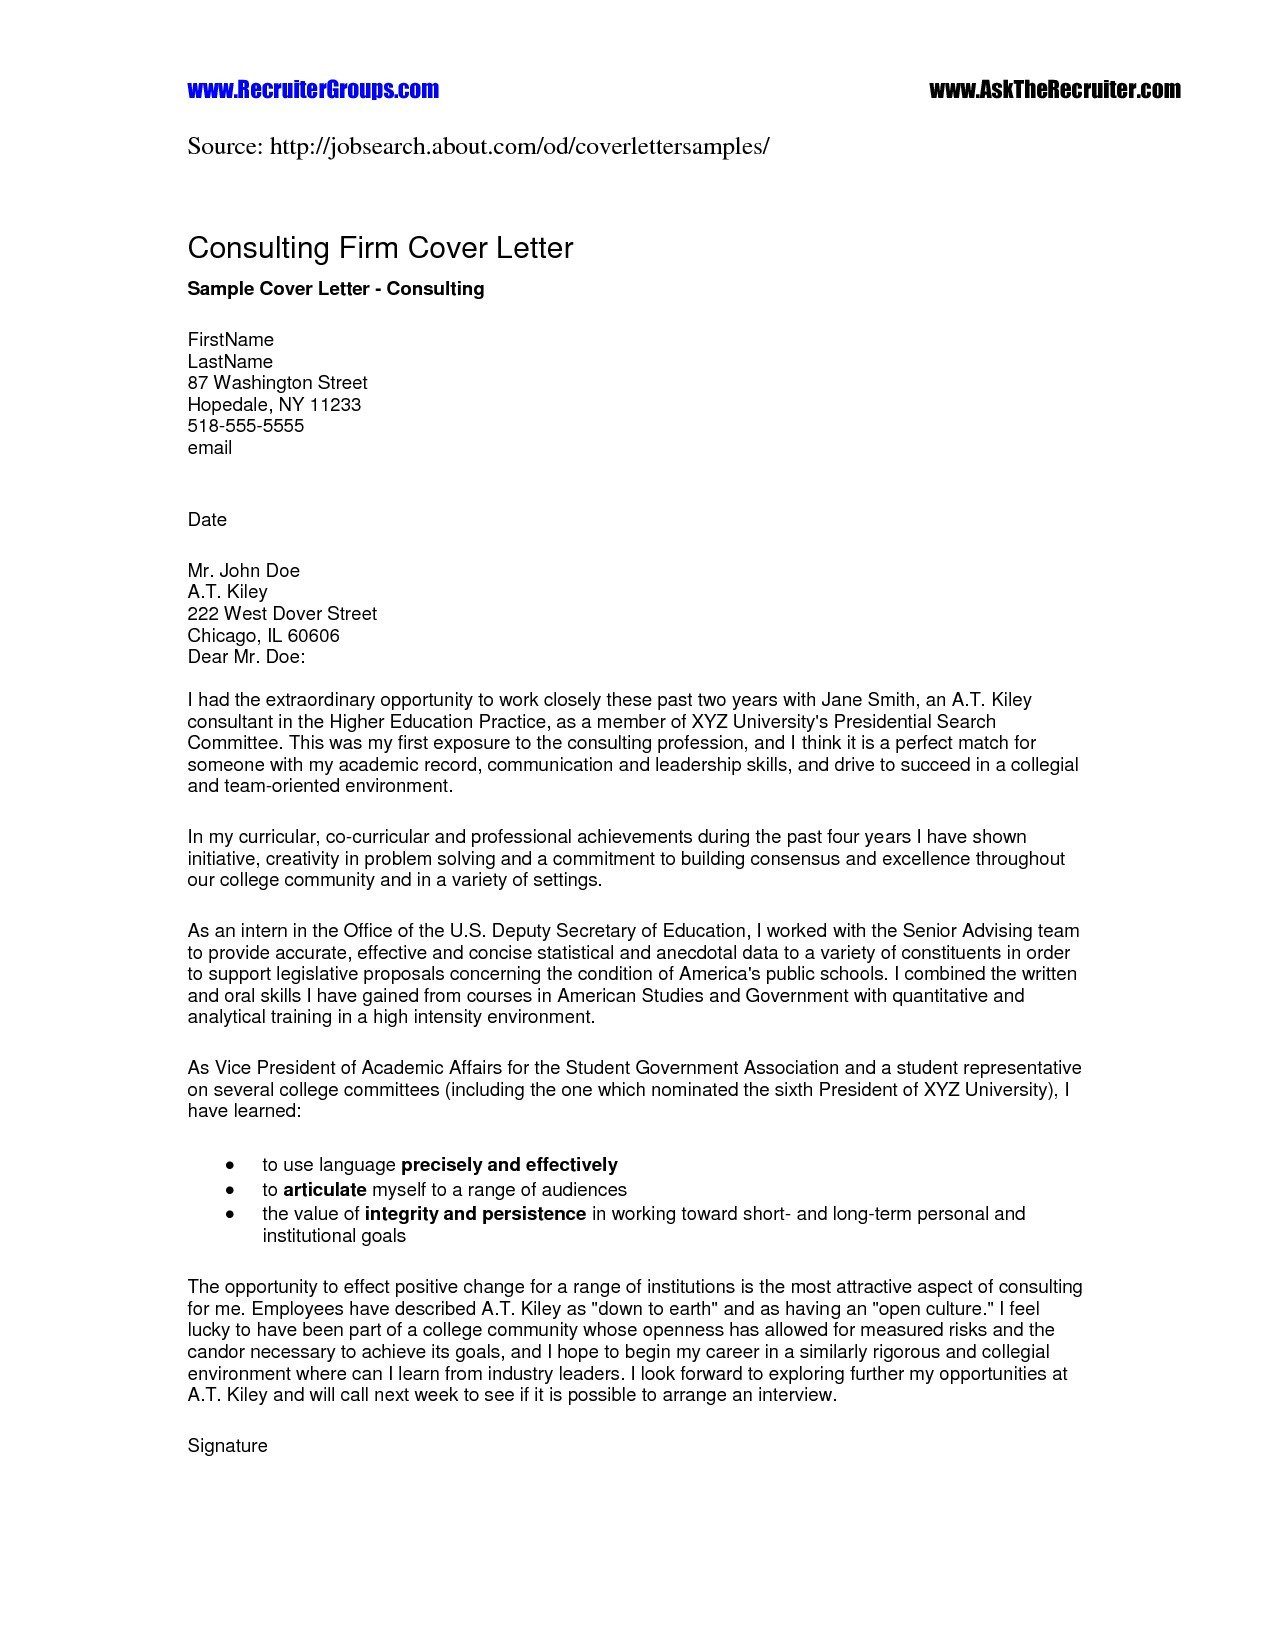 Free Breach Of Contract Letter Template - Sample Breach Contract Letter Beautiful Engagement Letter